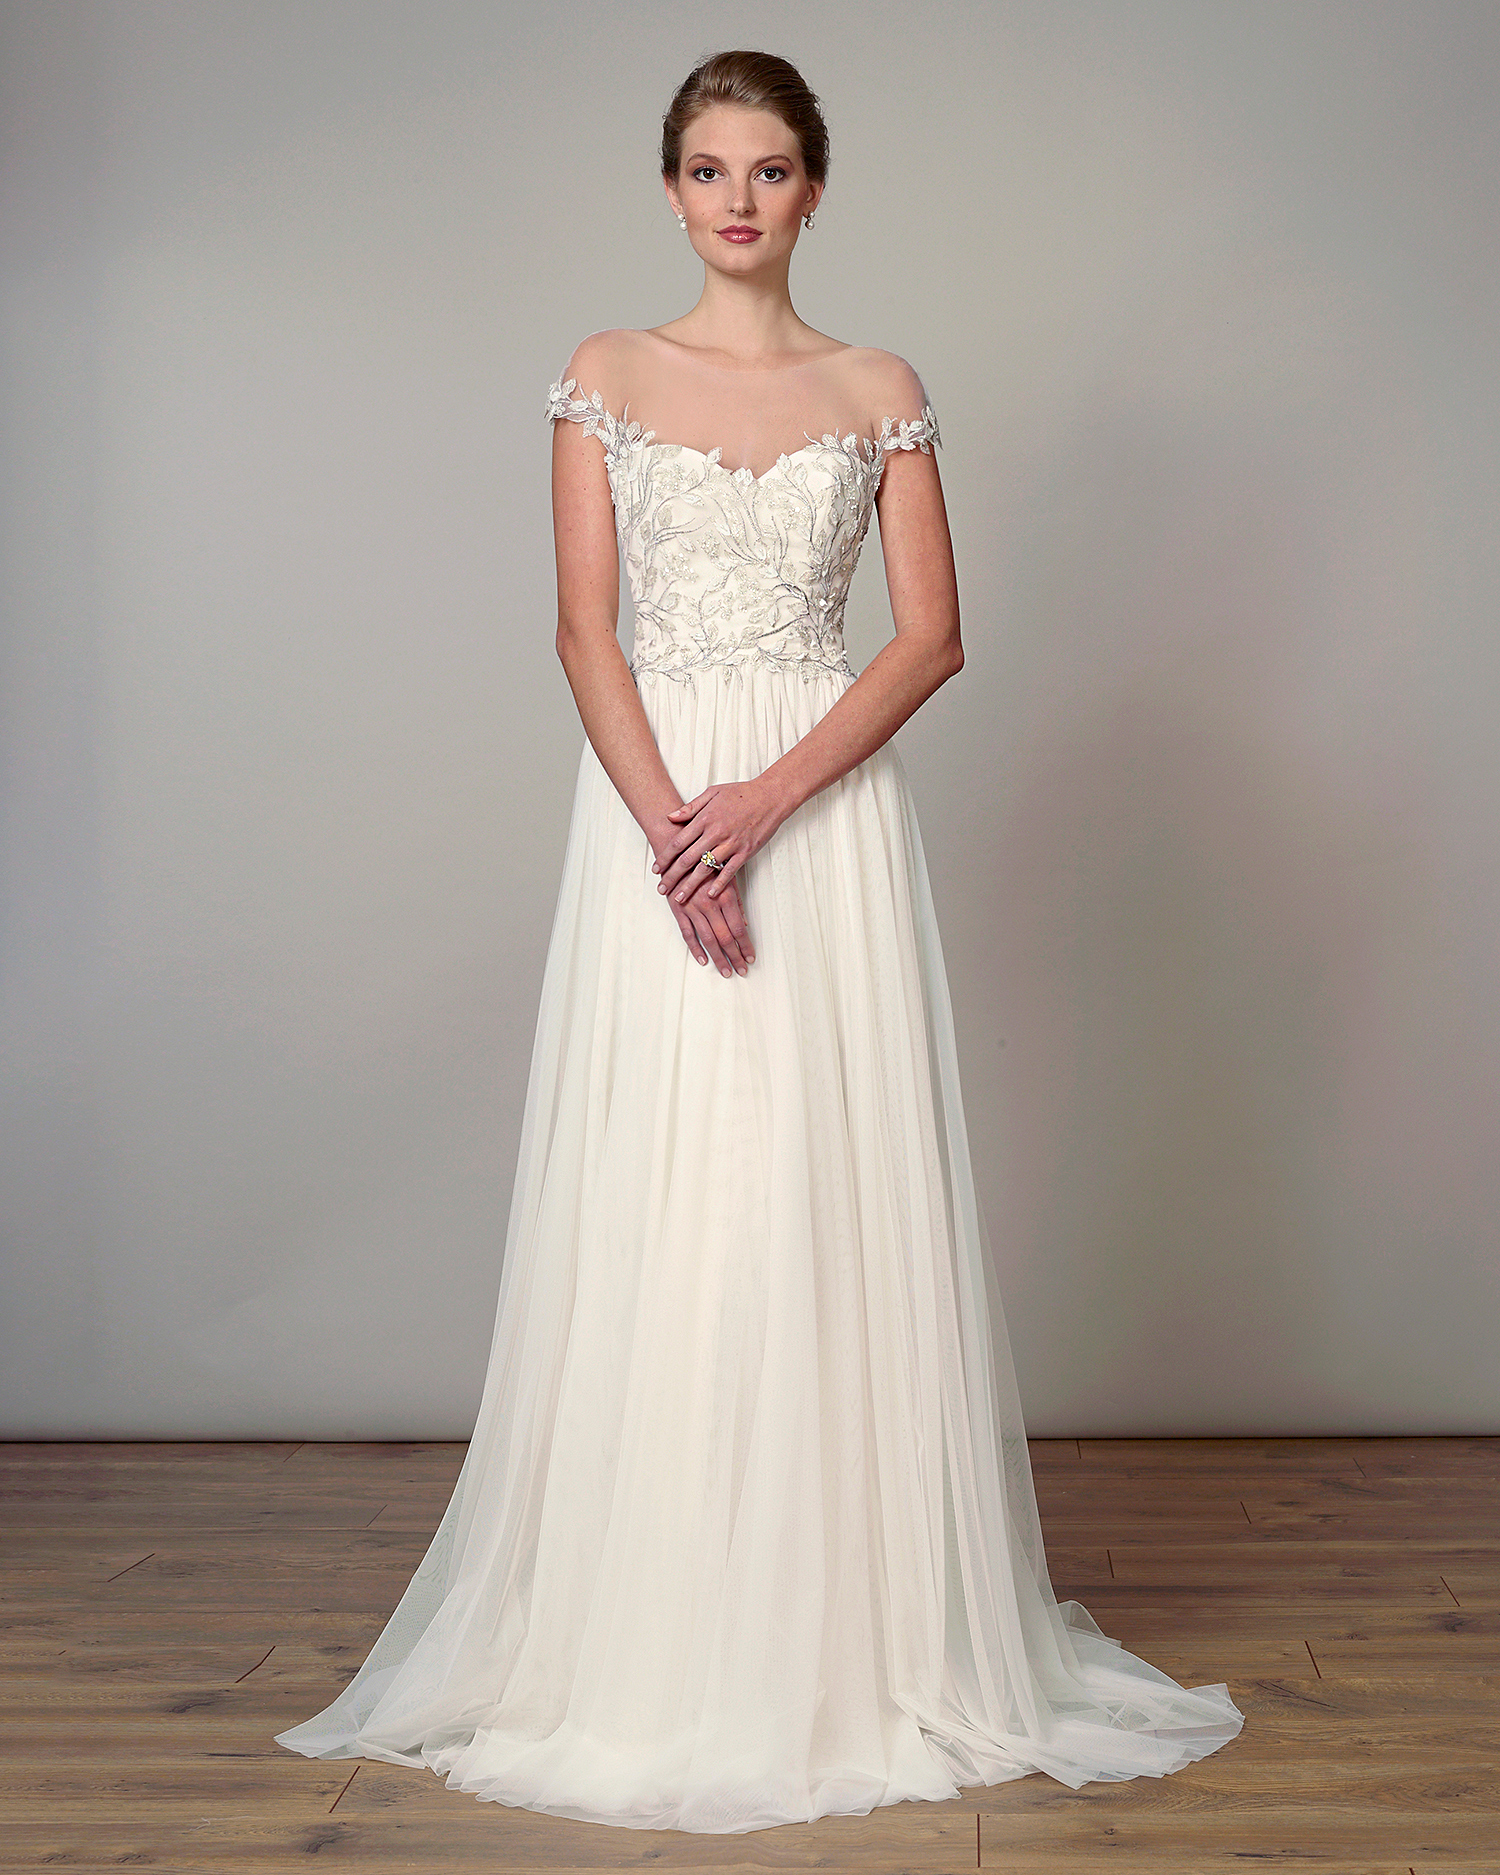 liancarlo wedding dress spring 2019 embroidered bodice off-the-shoulder